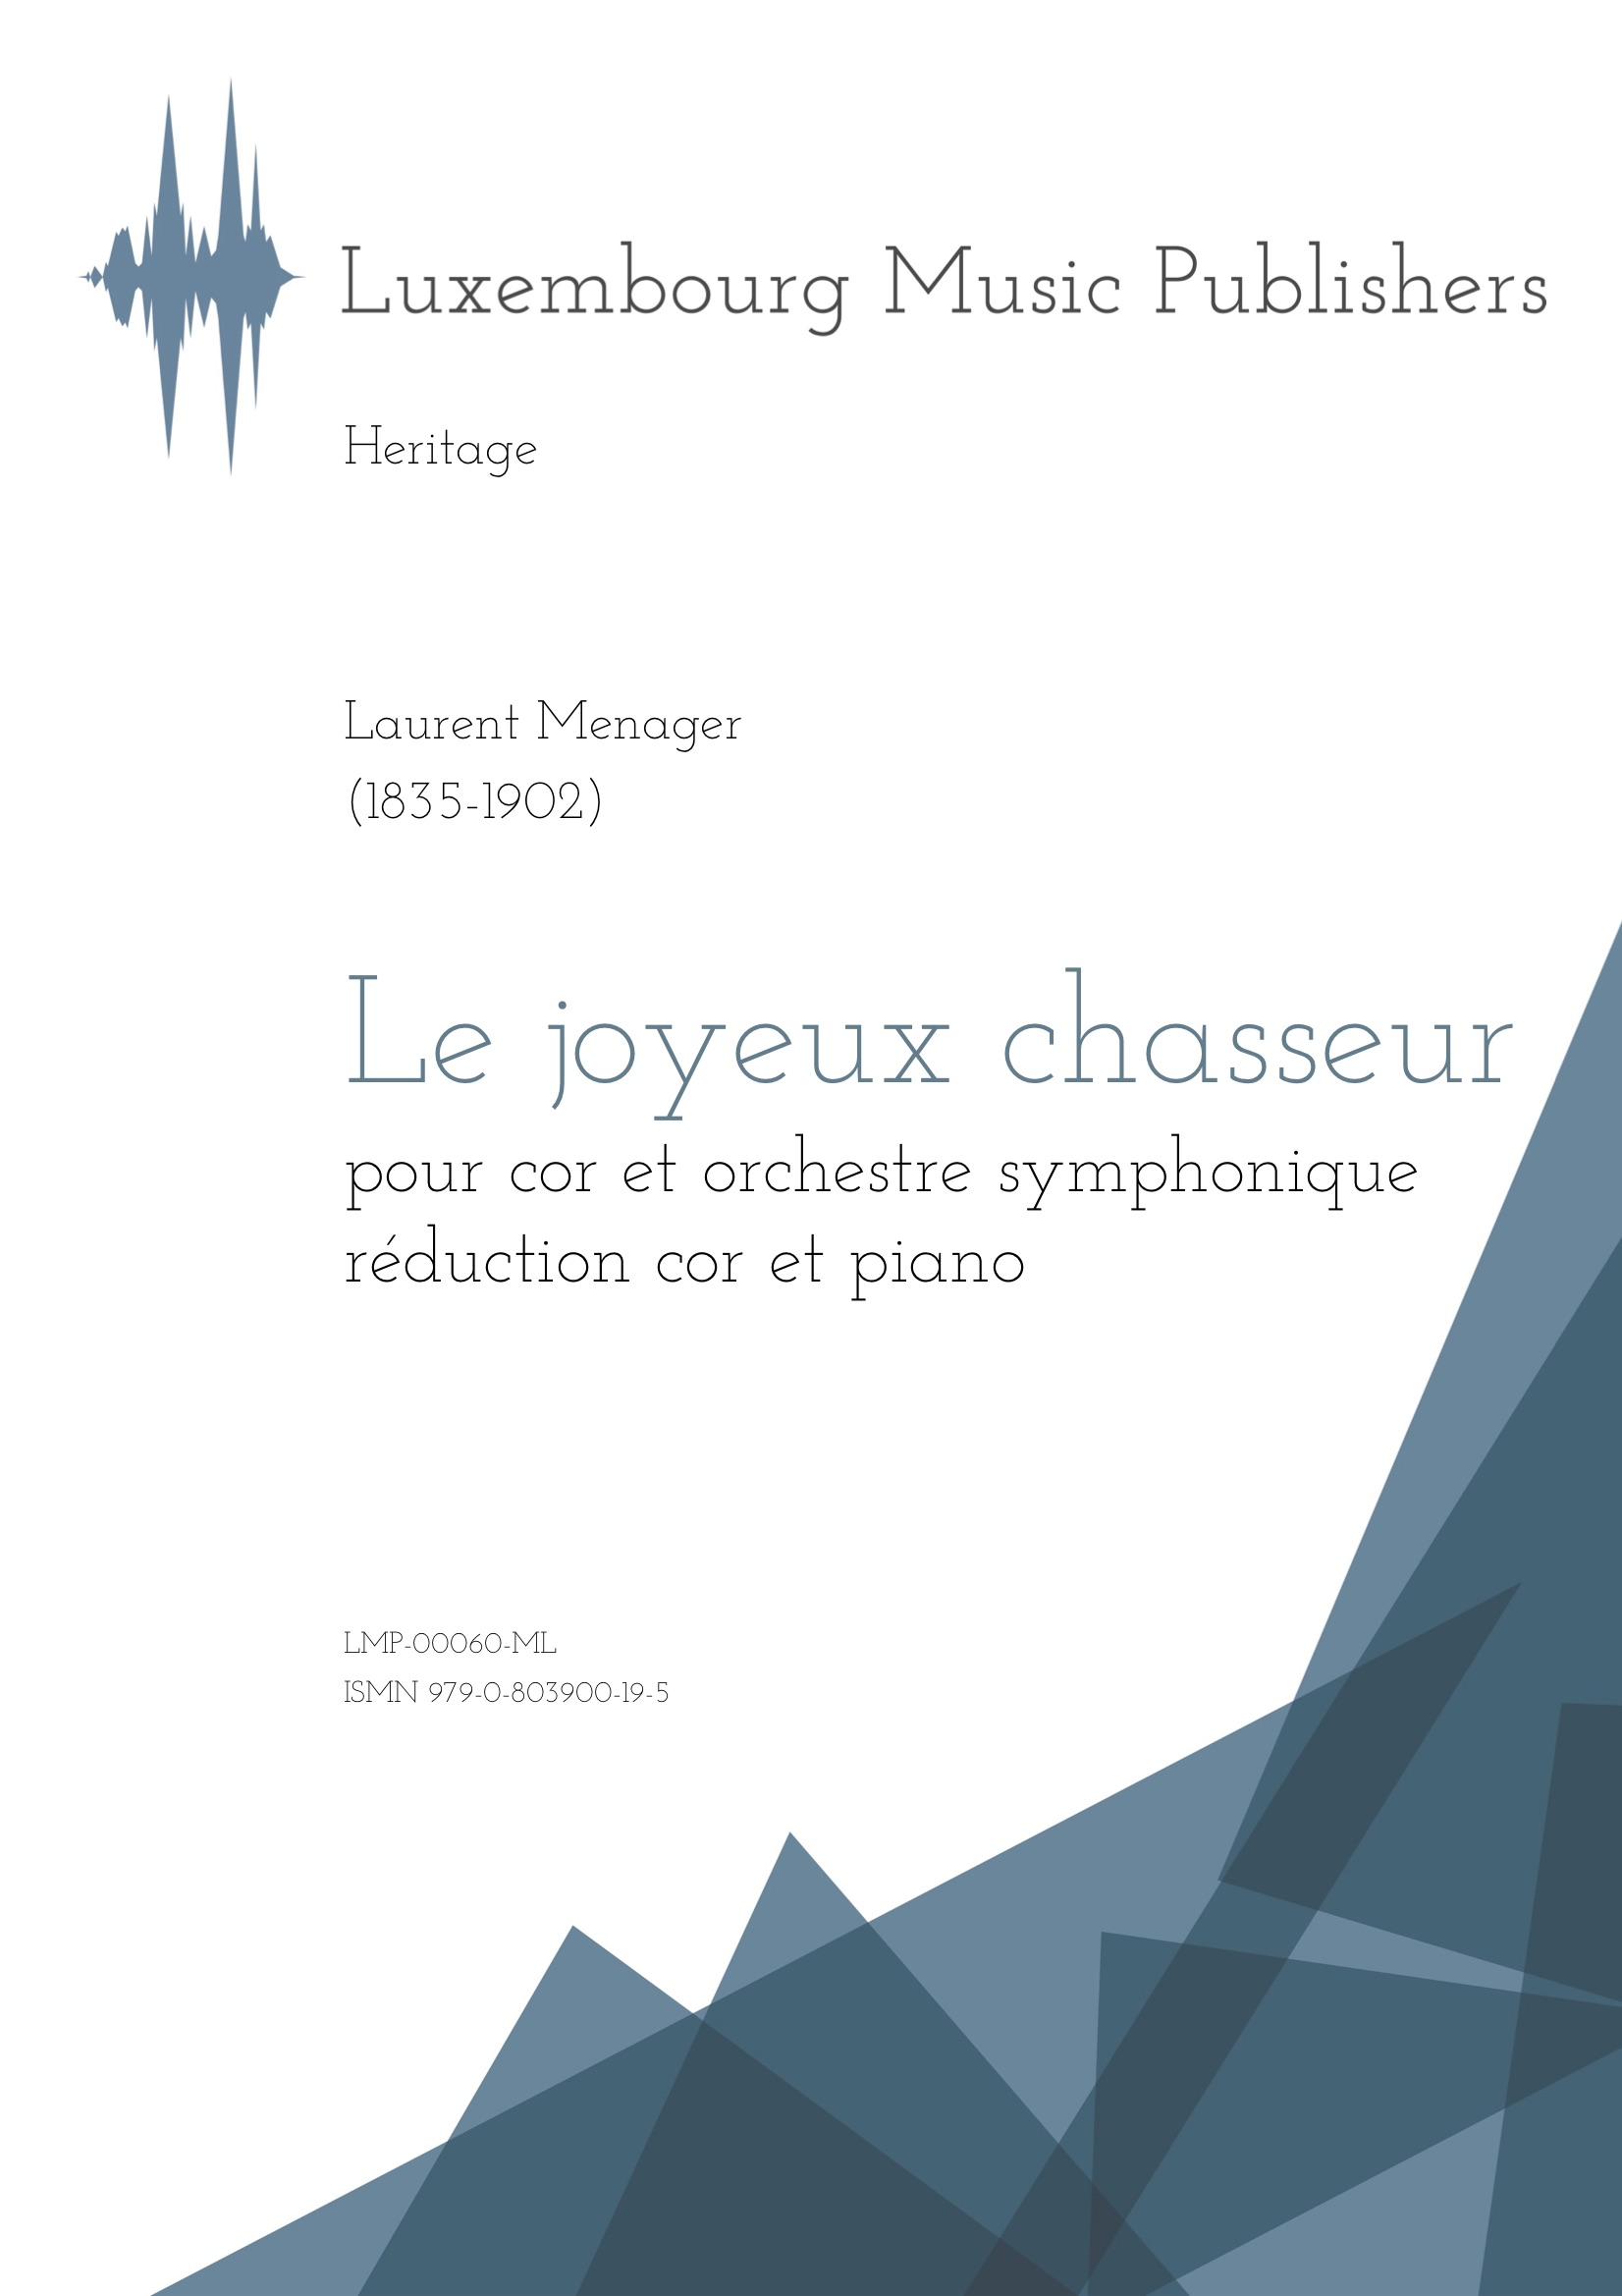 Le joyeux chasseur. Sheet Music by Laurent Menager, composer. Music for horn solo and symphonic orchestra. Music for solo instrument and orchestra. Piano reduction.